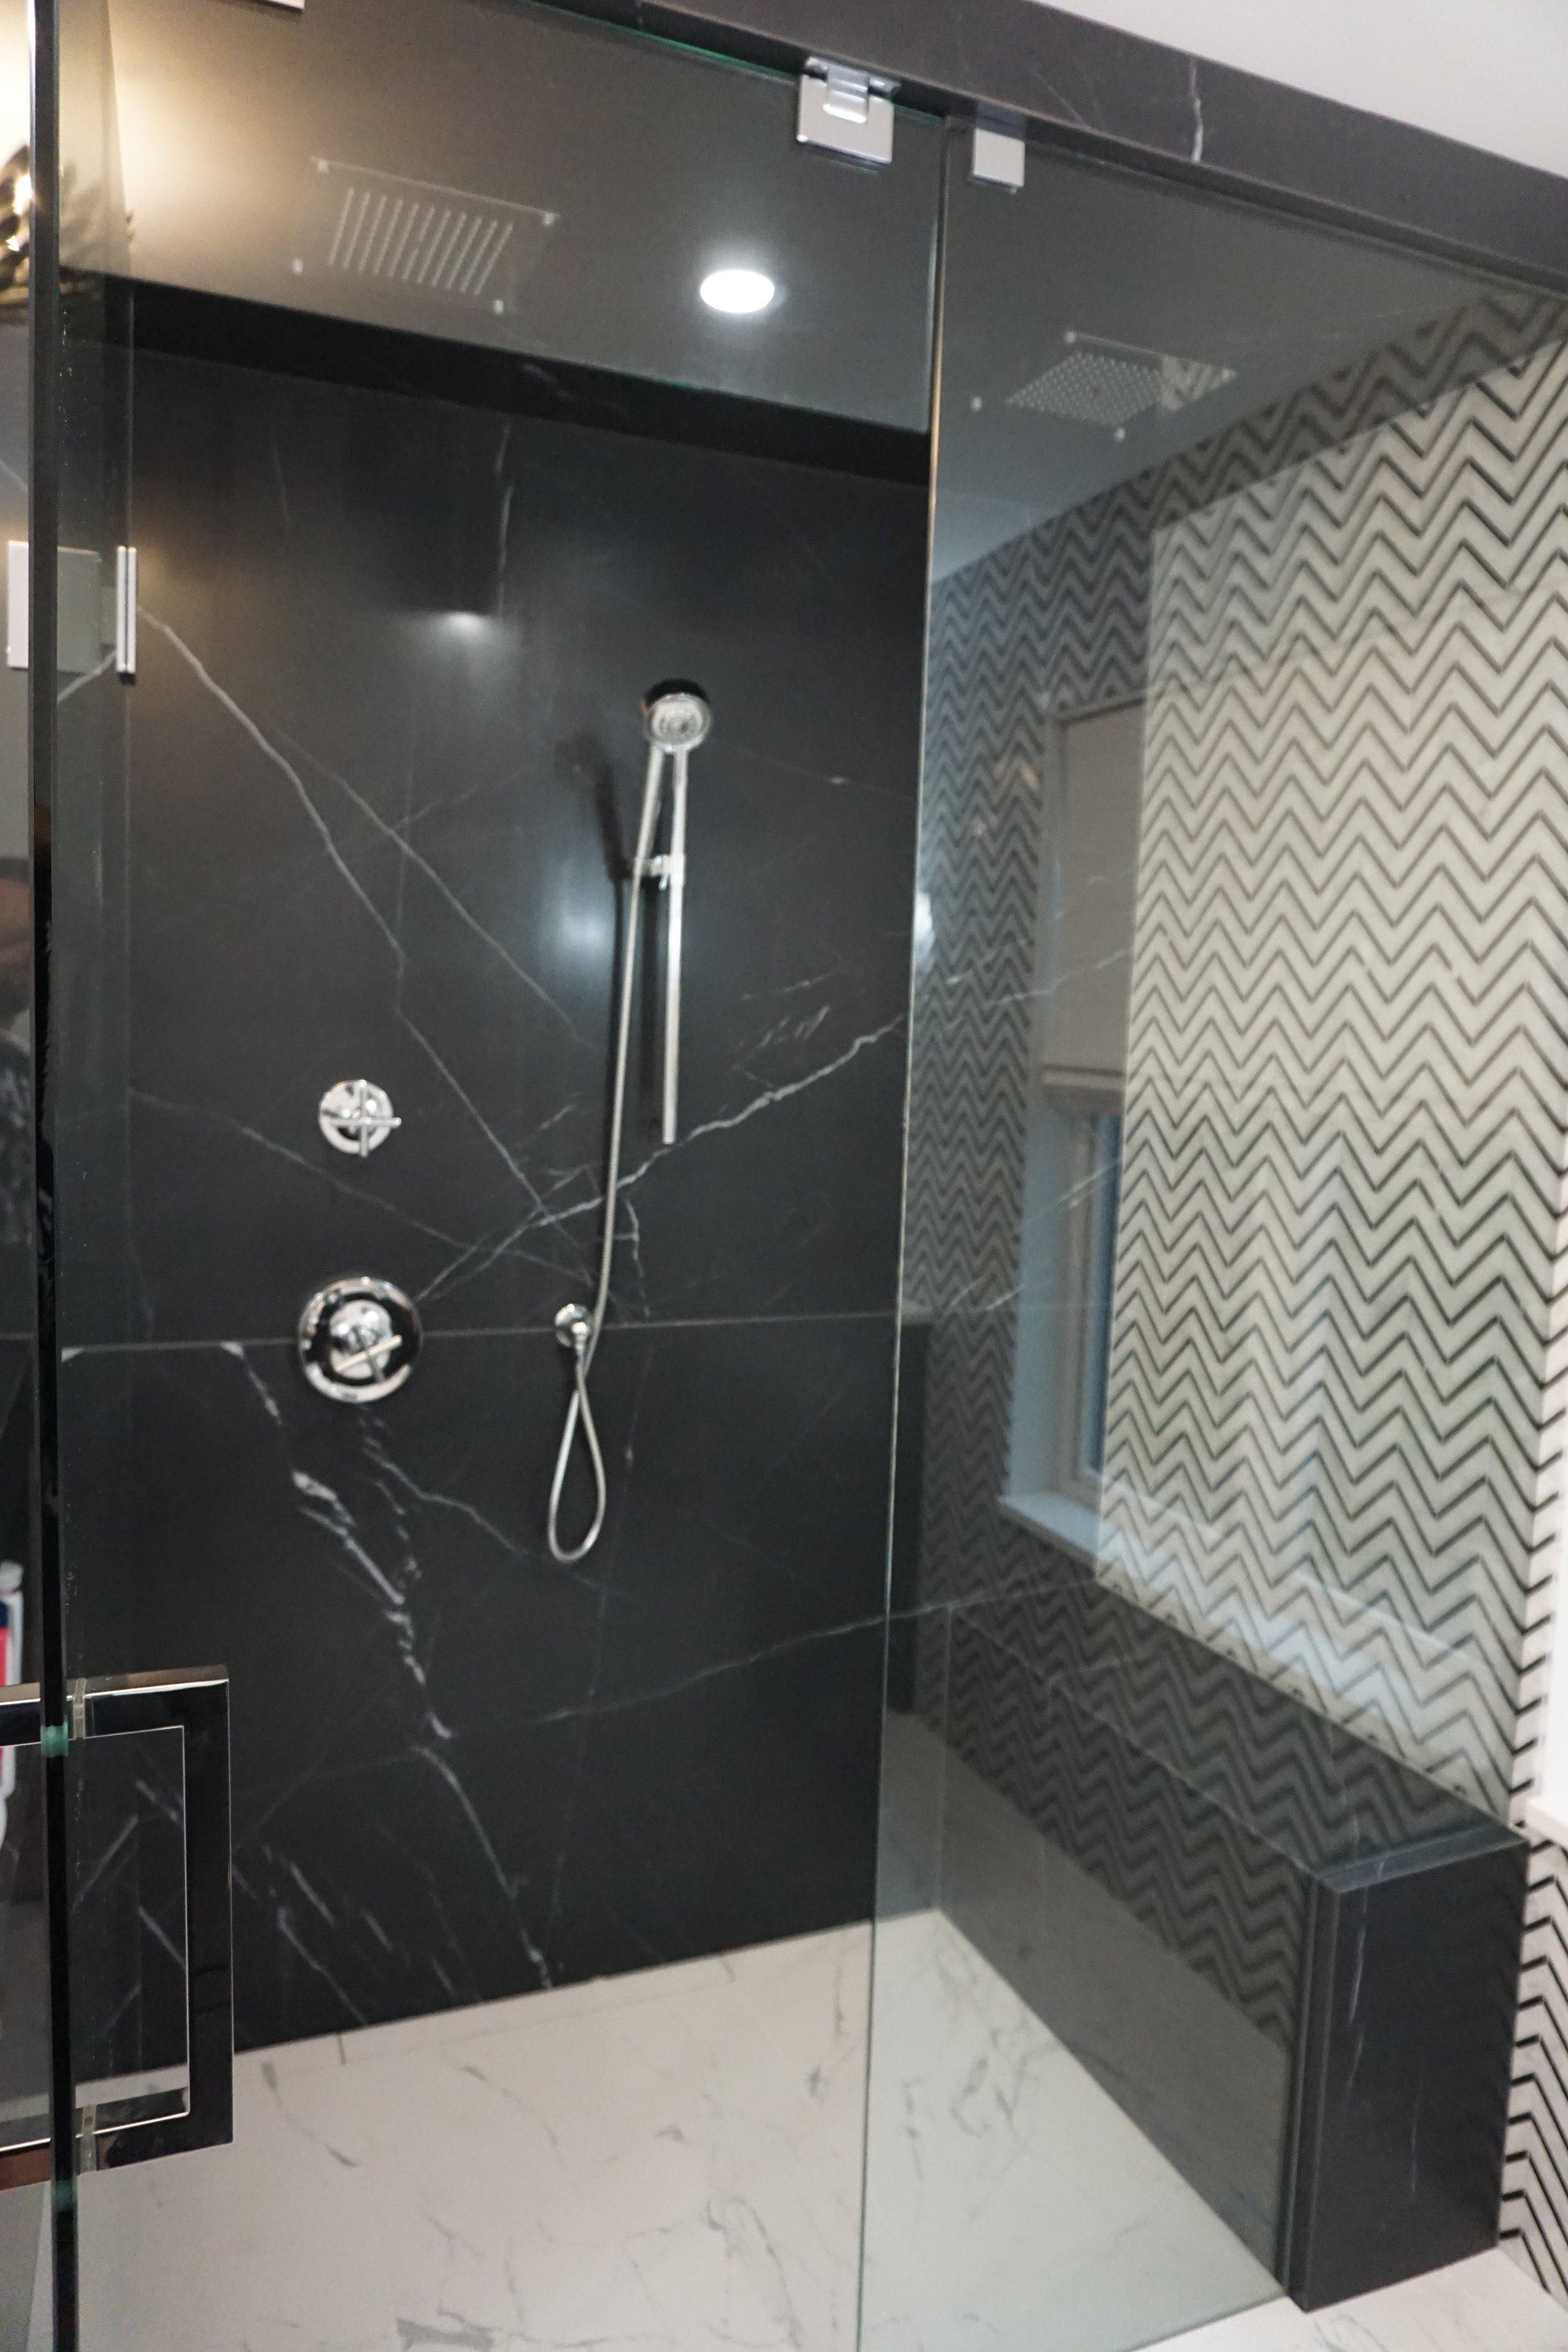 Nero Marquina - This is a honed porcelain Nero marquina porcelain slab, installed in this curb less shower. The bench drop ceiling and pony wall have all been wrapped. With the marble accent wall spilling into the shower space and the bathroom floor flowing seamlessly to the tiled linear drain.